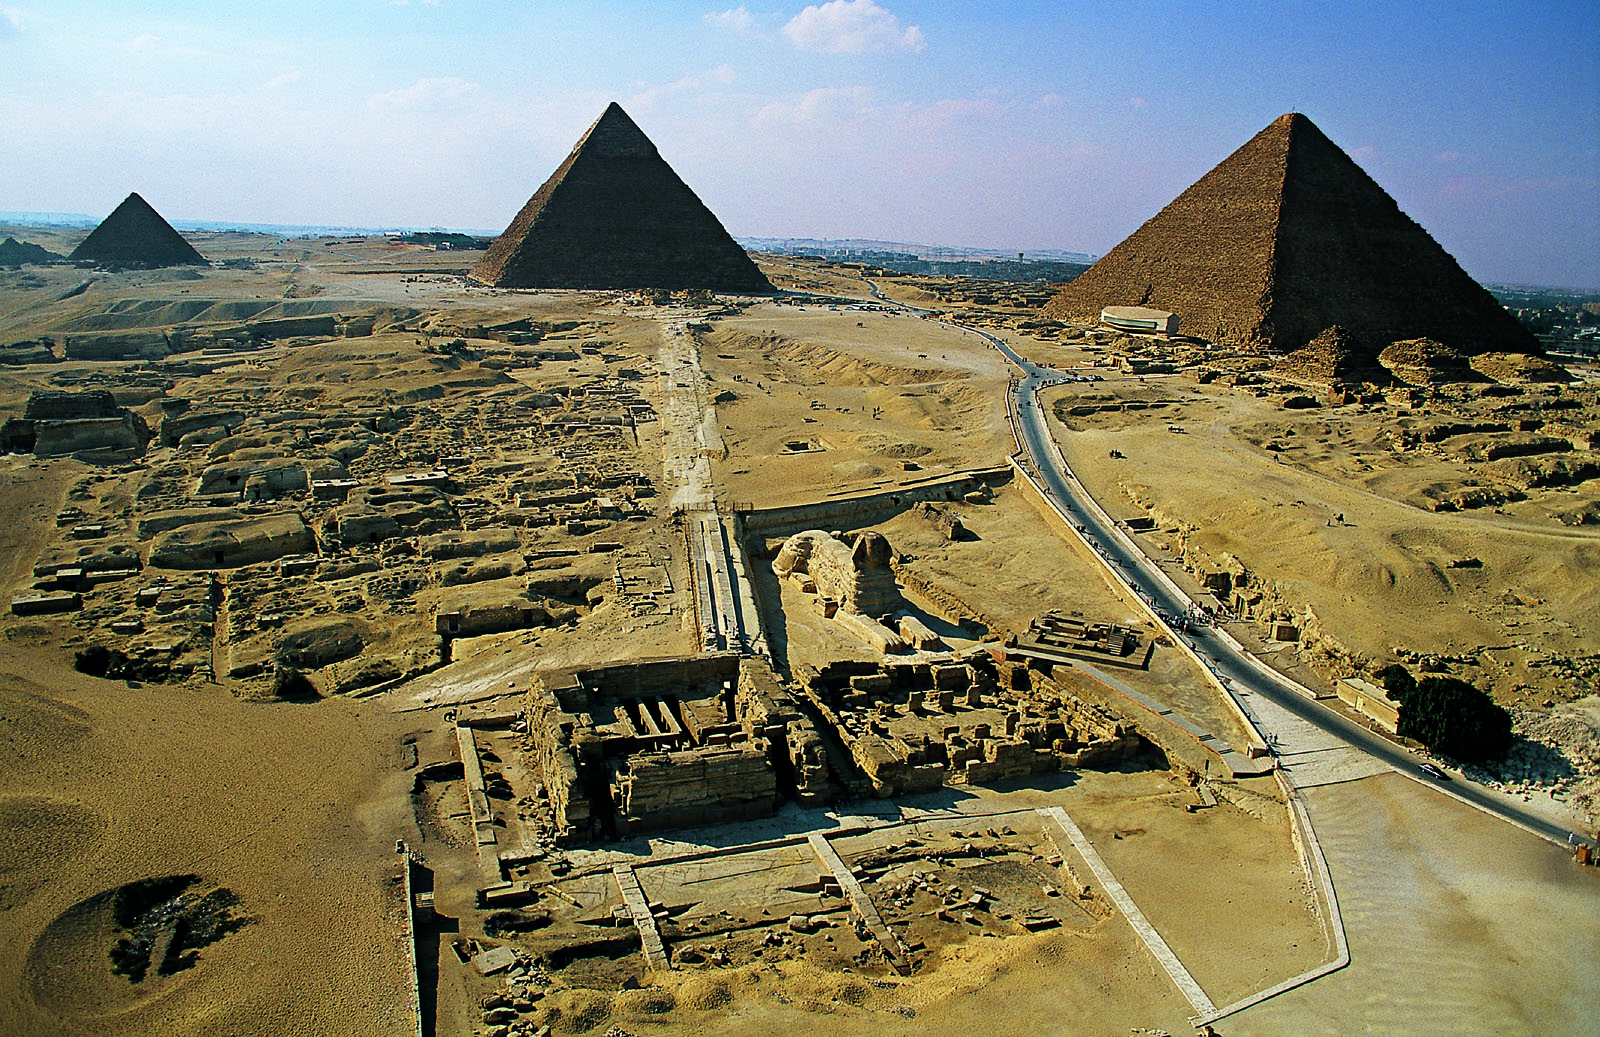 General view: Site: Giza; View: Khufu pyramid, Khafre pyramid, Menkaure pyramid, Sphinx